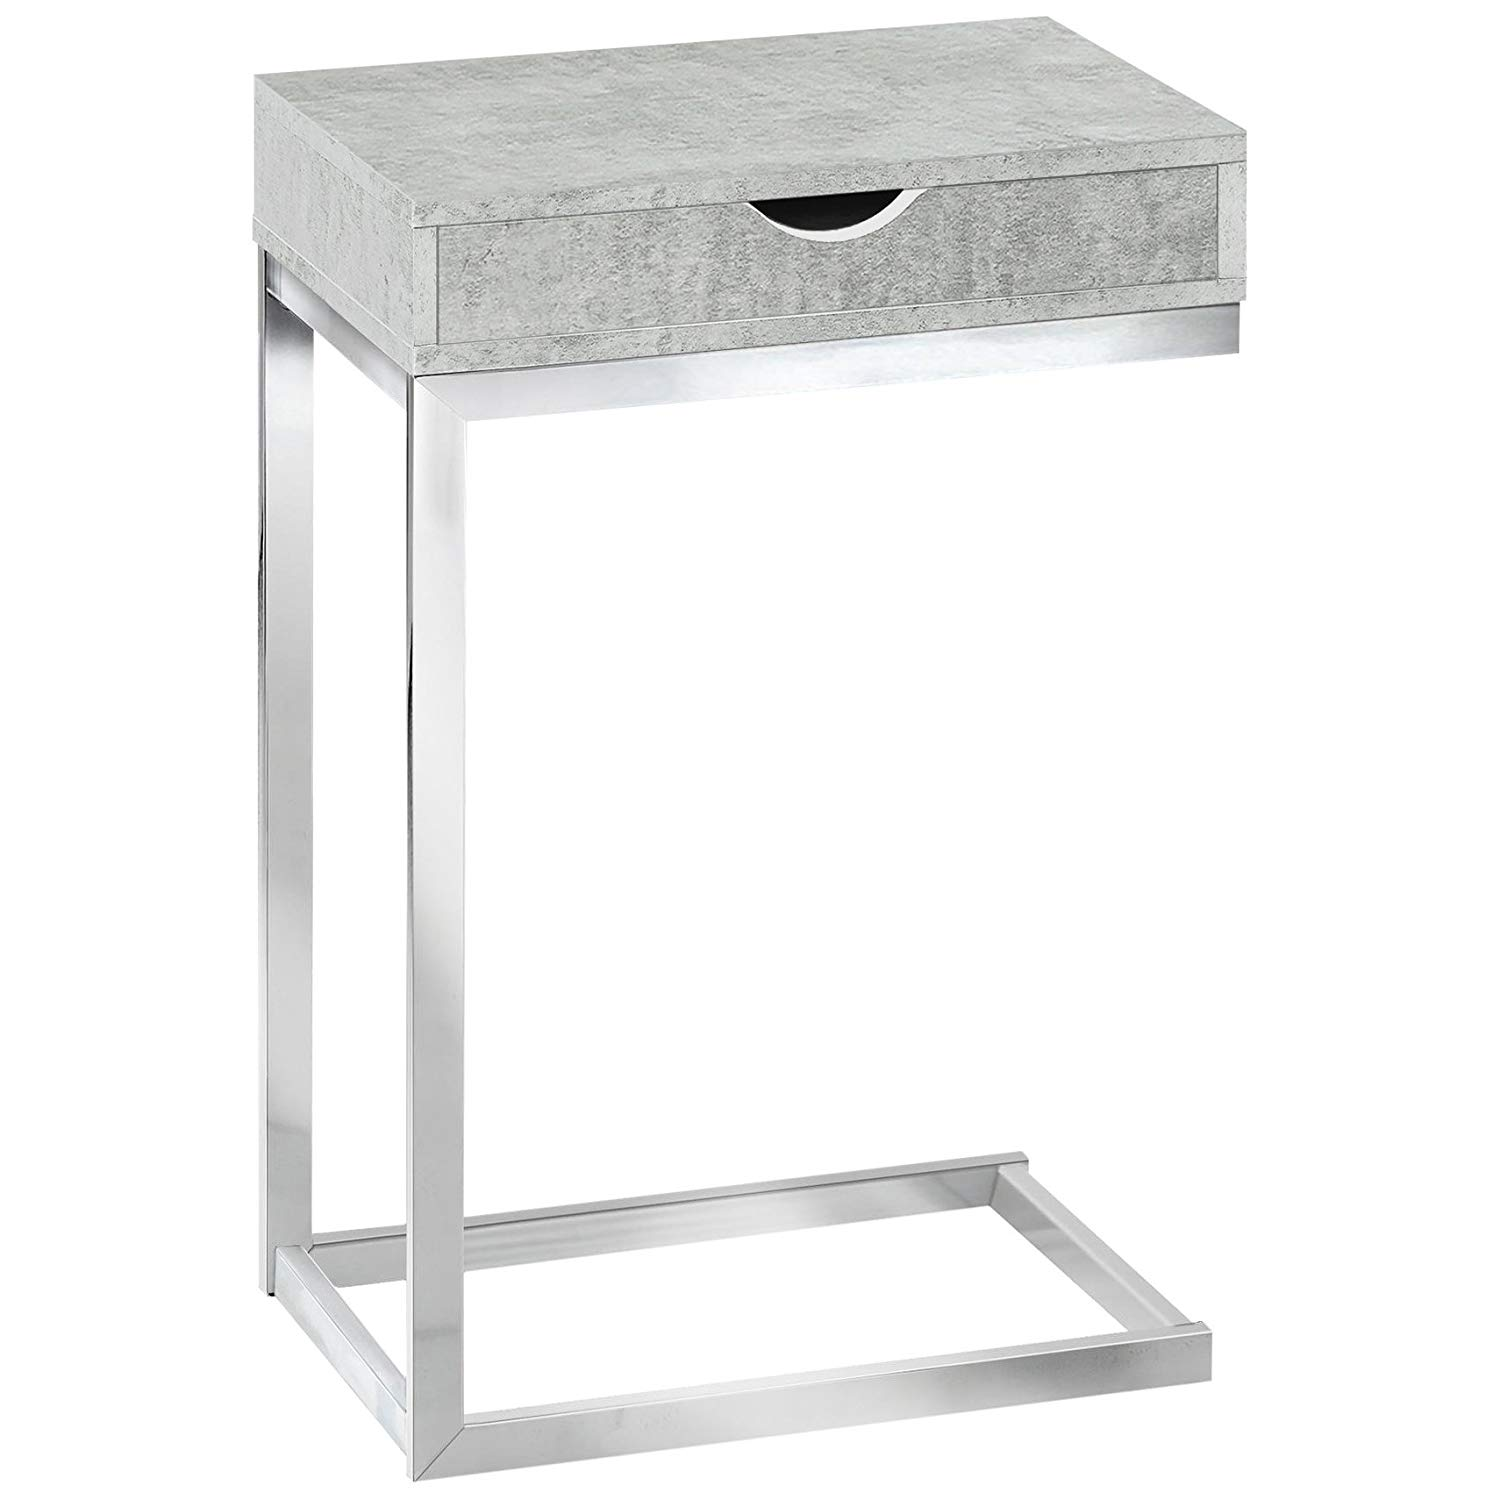 monarch specialties accent table with drawer metal drawers chrome dark grey cement kitchen dining simple side plans outdoor glass home goods coffee tables pedestal legs art desk